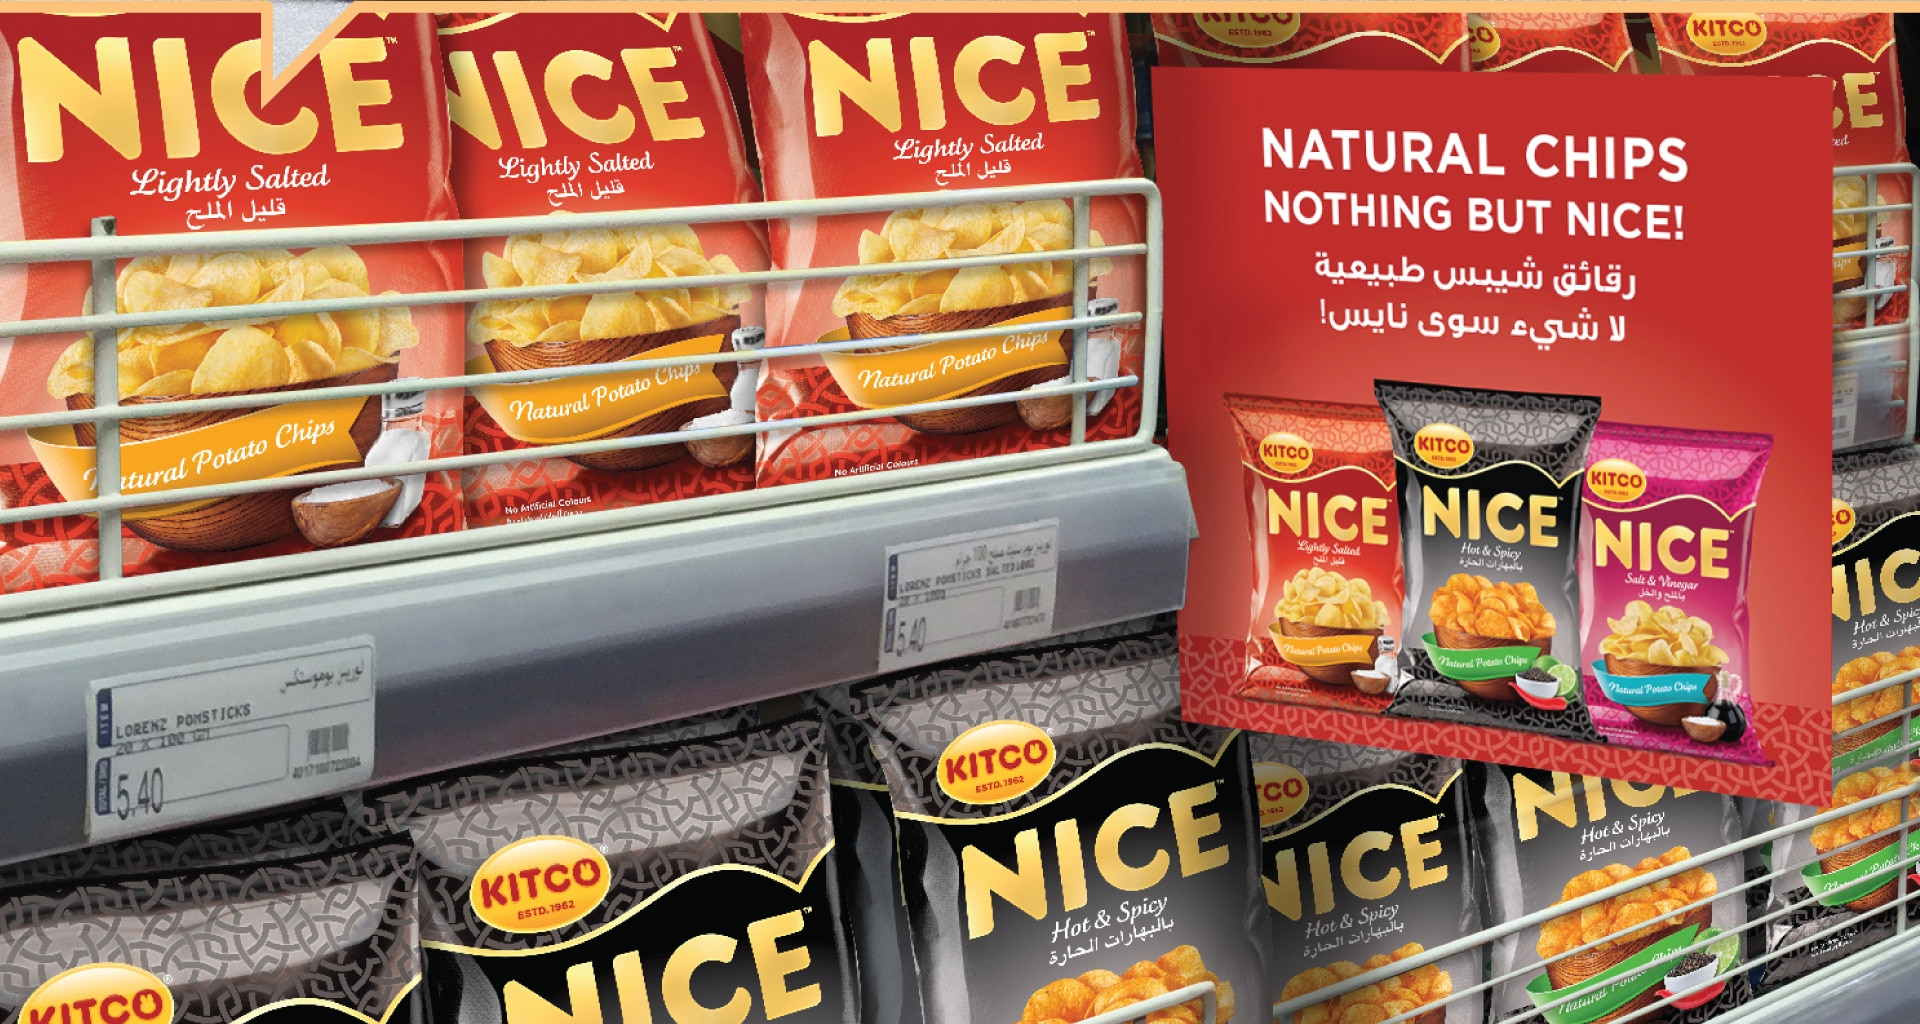 Kitco Nice - In-Store Retail